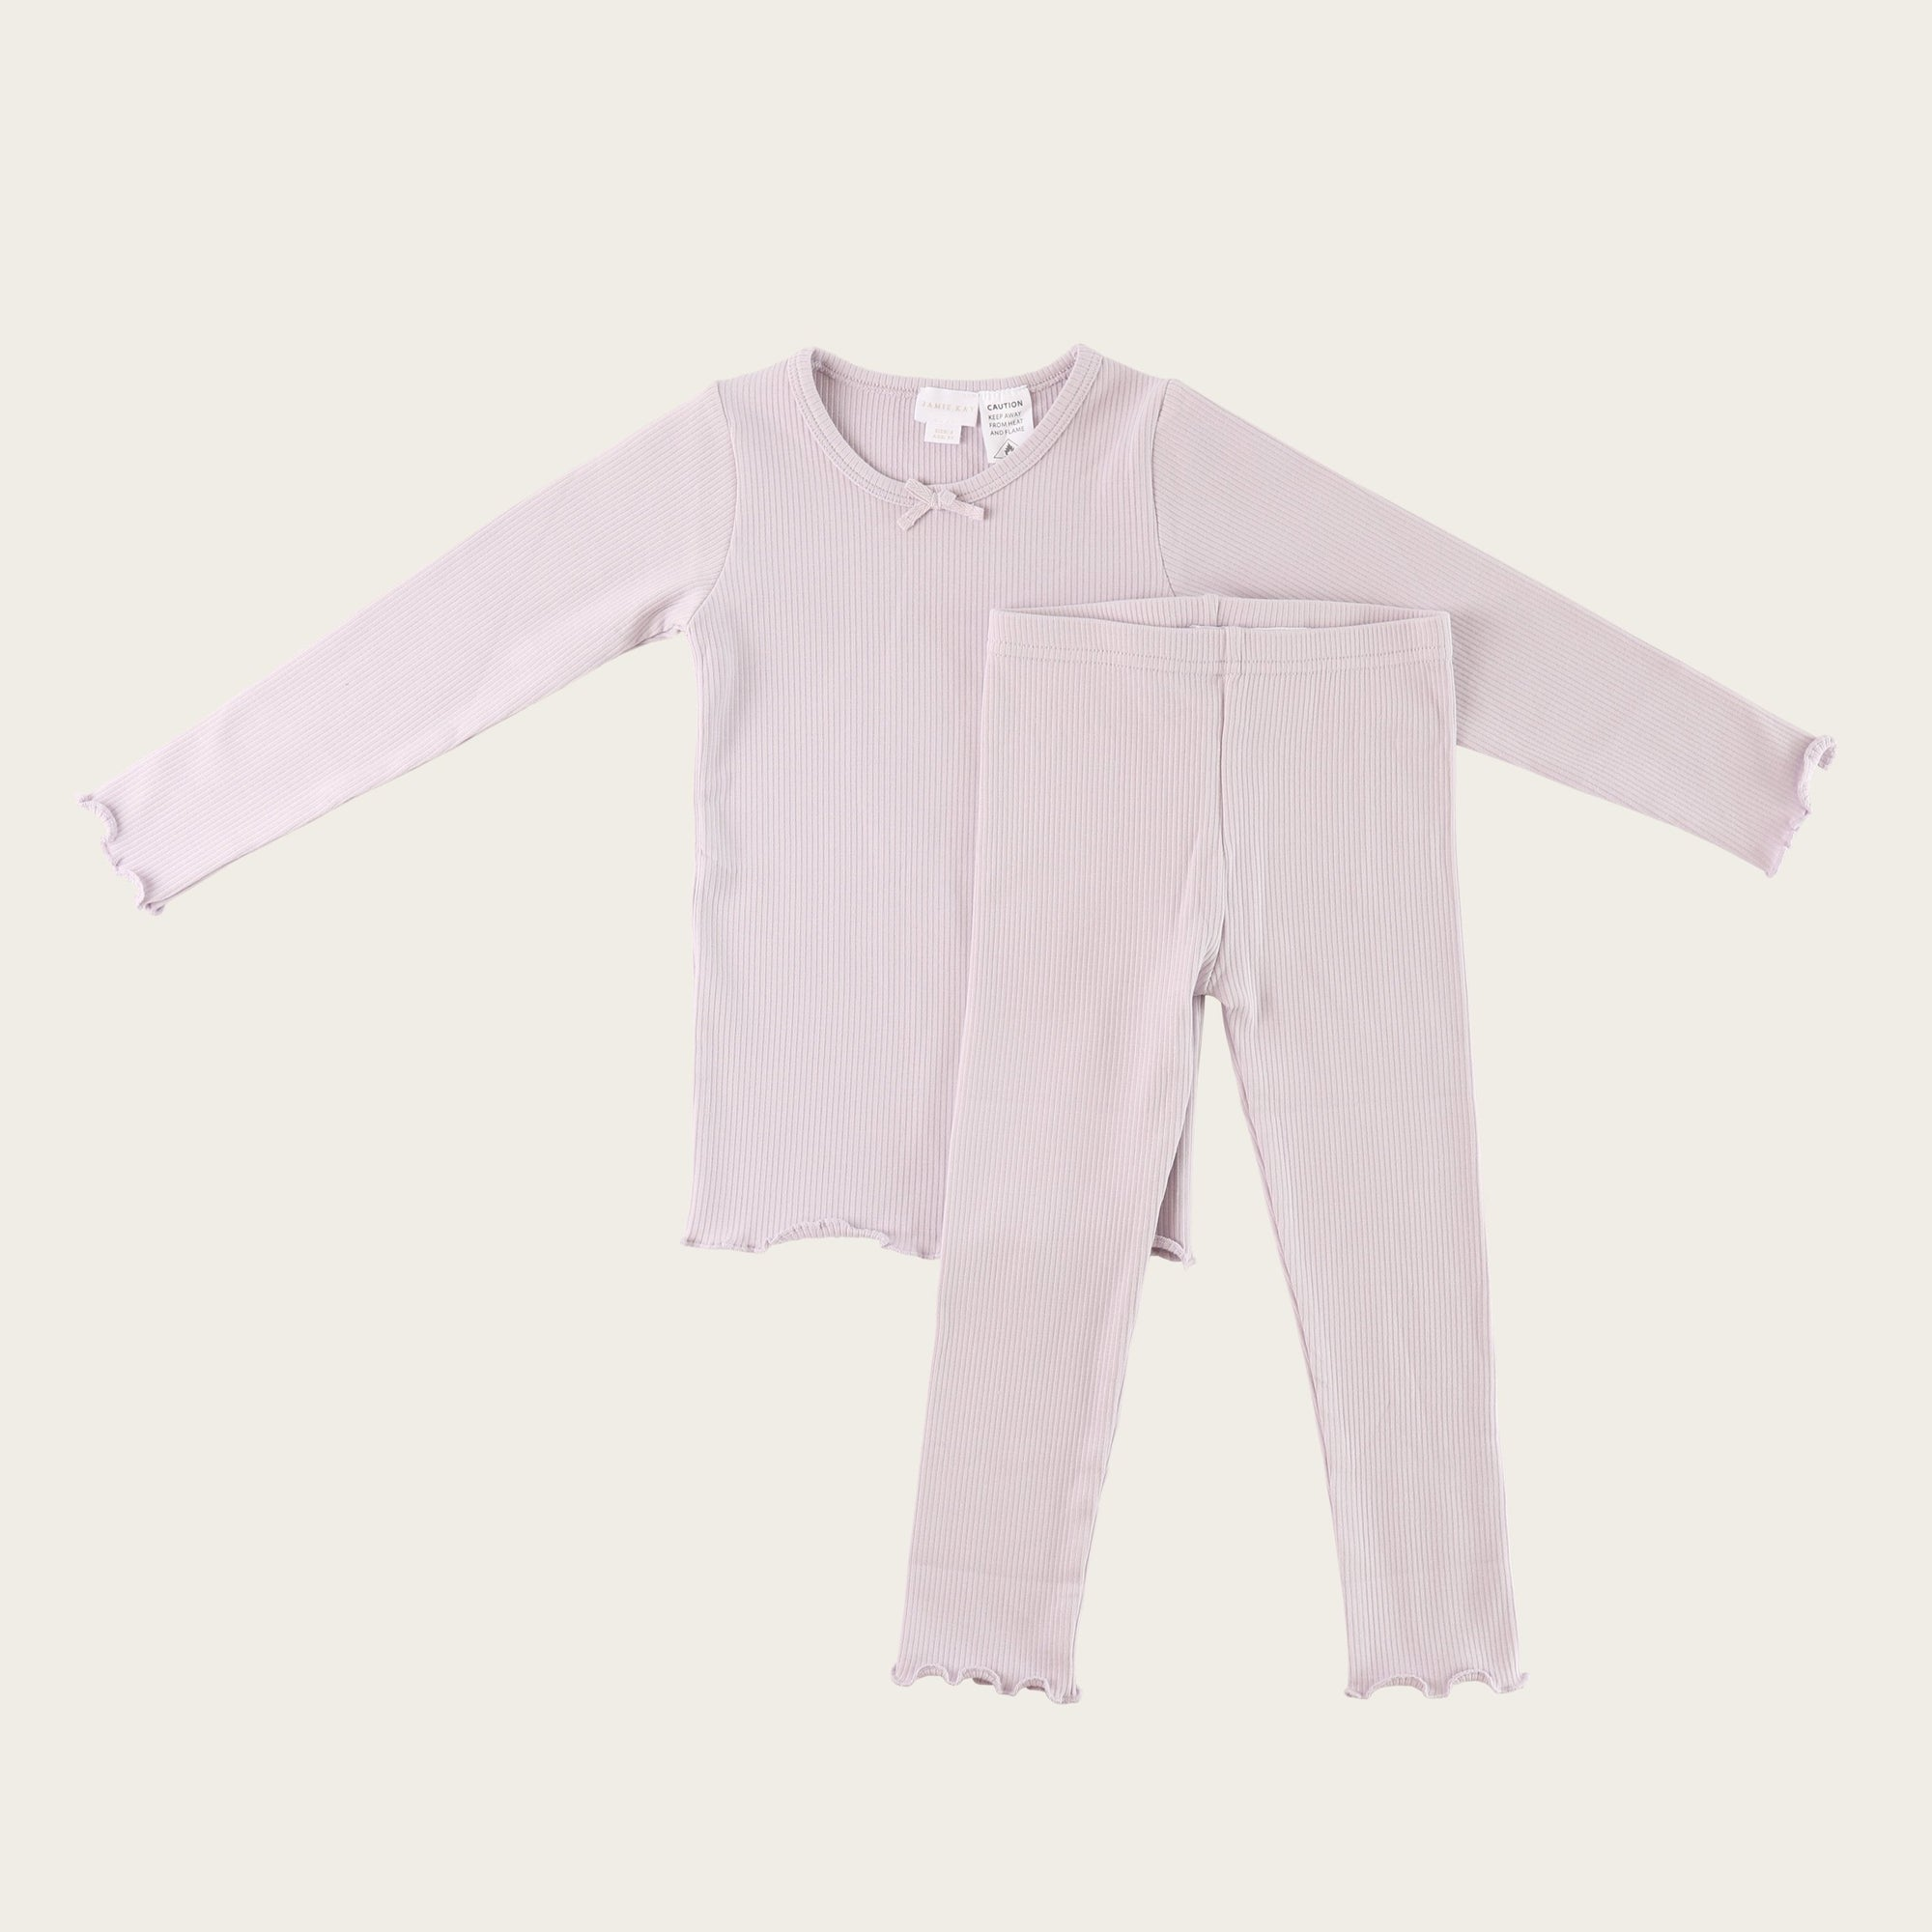 Soft Lilac Winter Pyjamas